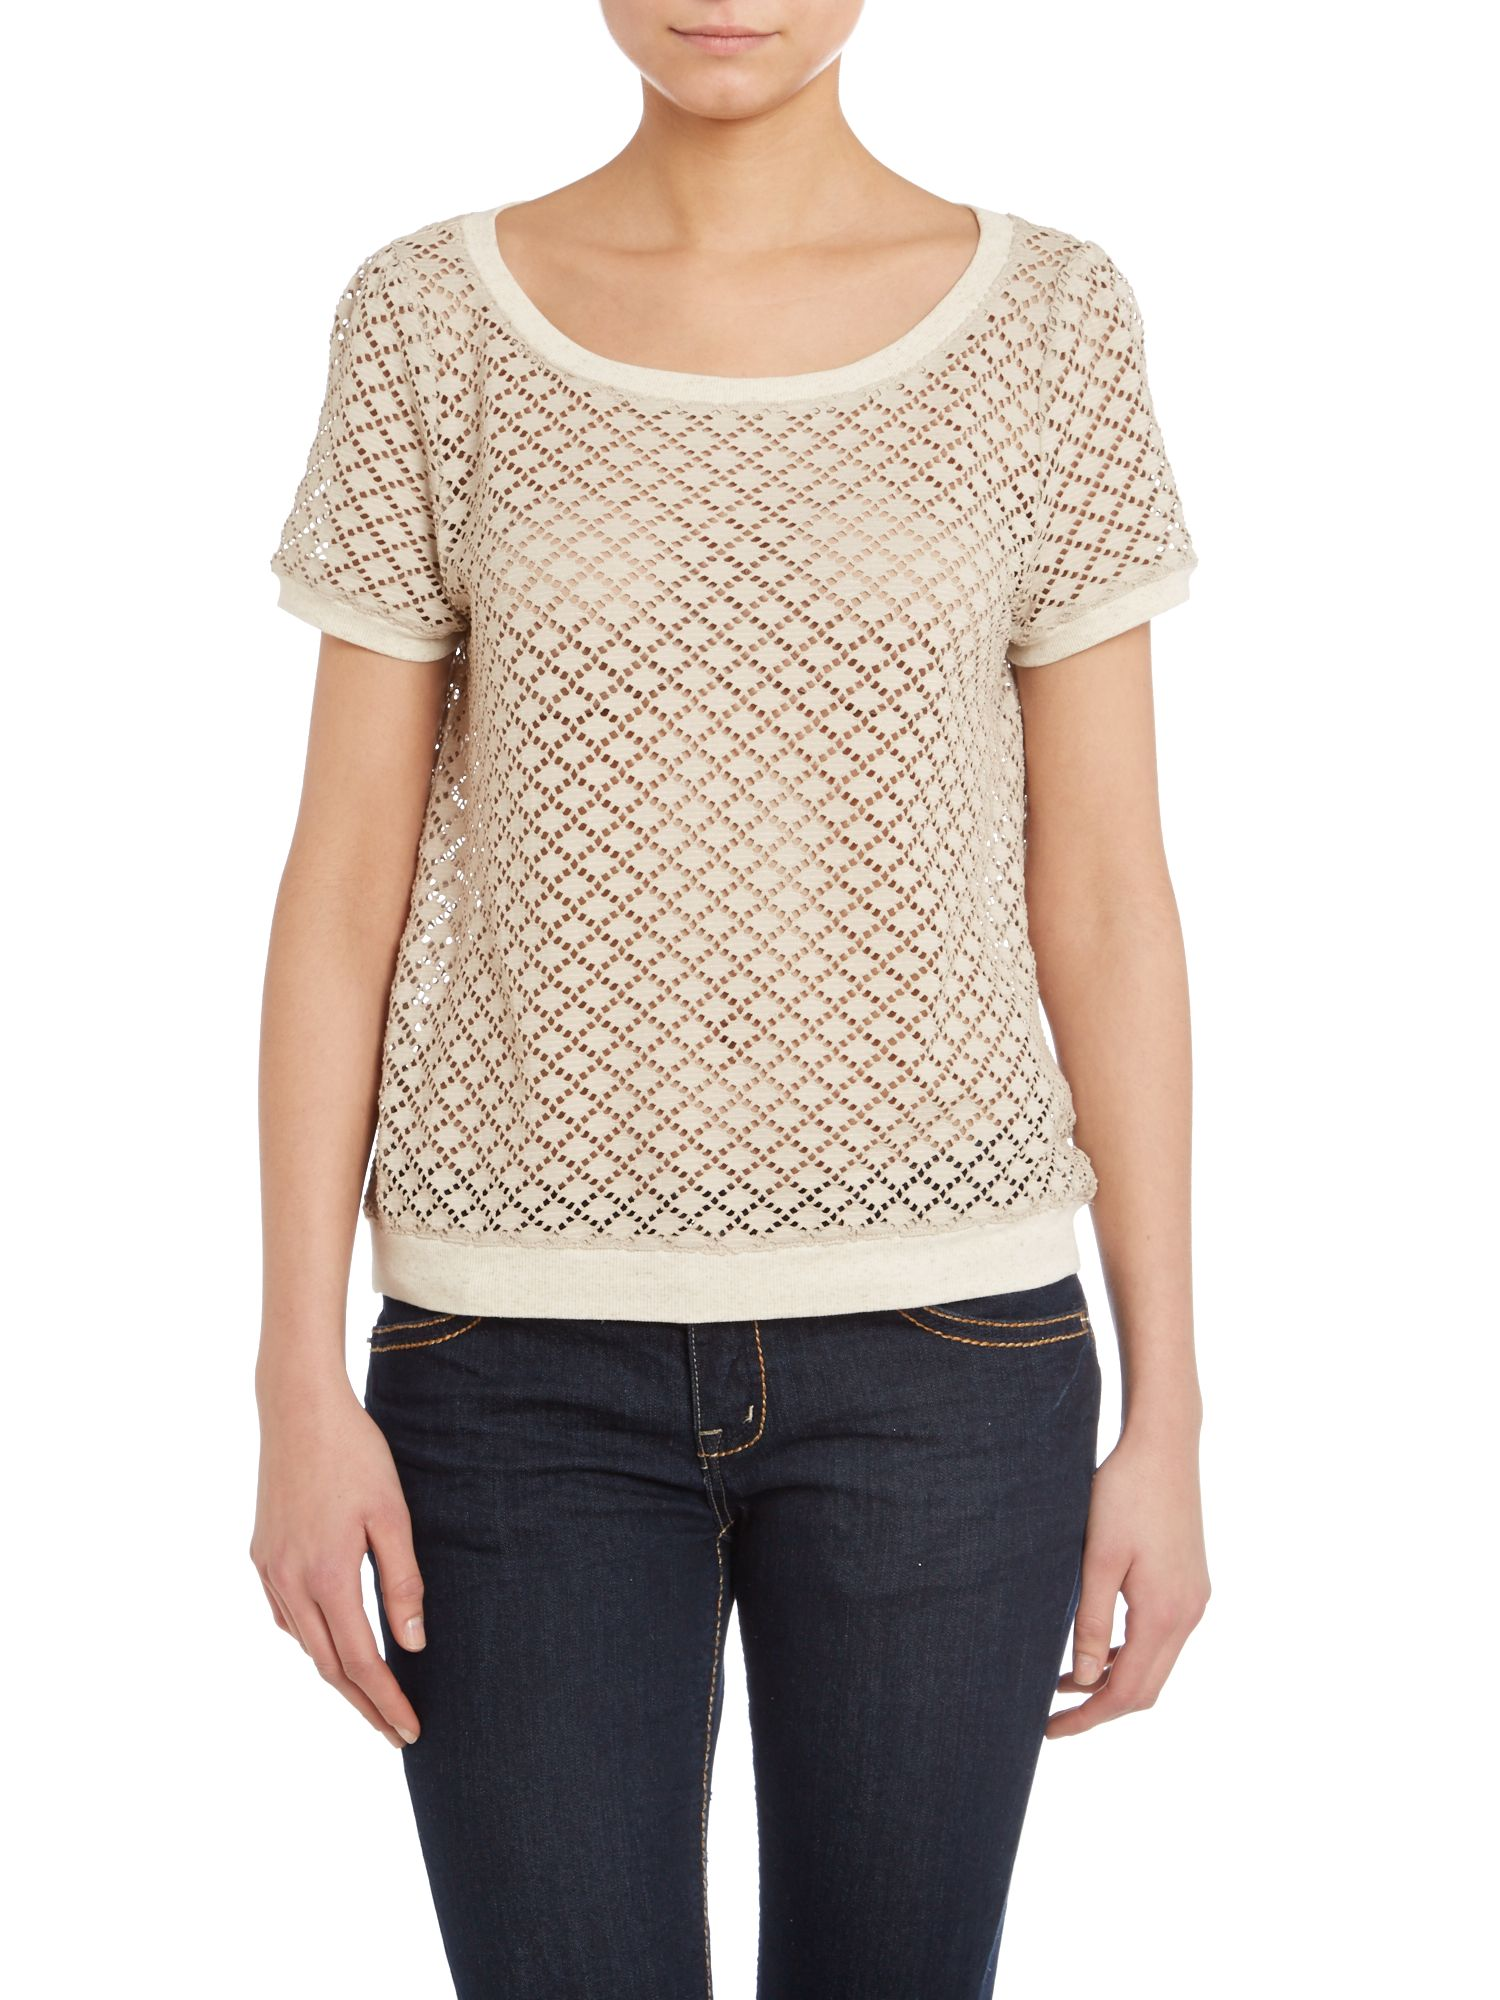 Short sleeve mesh knit top